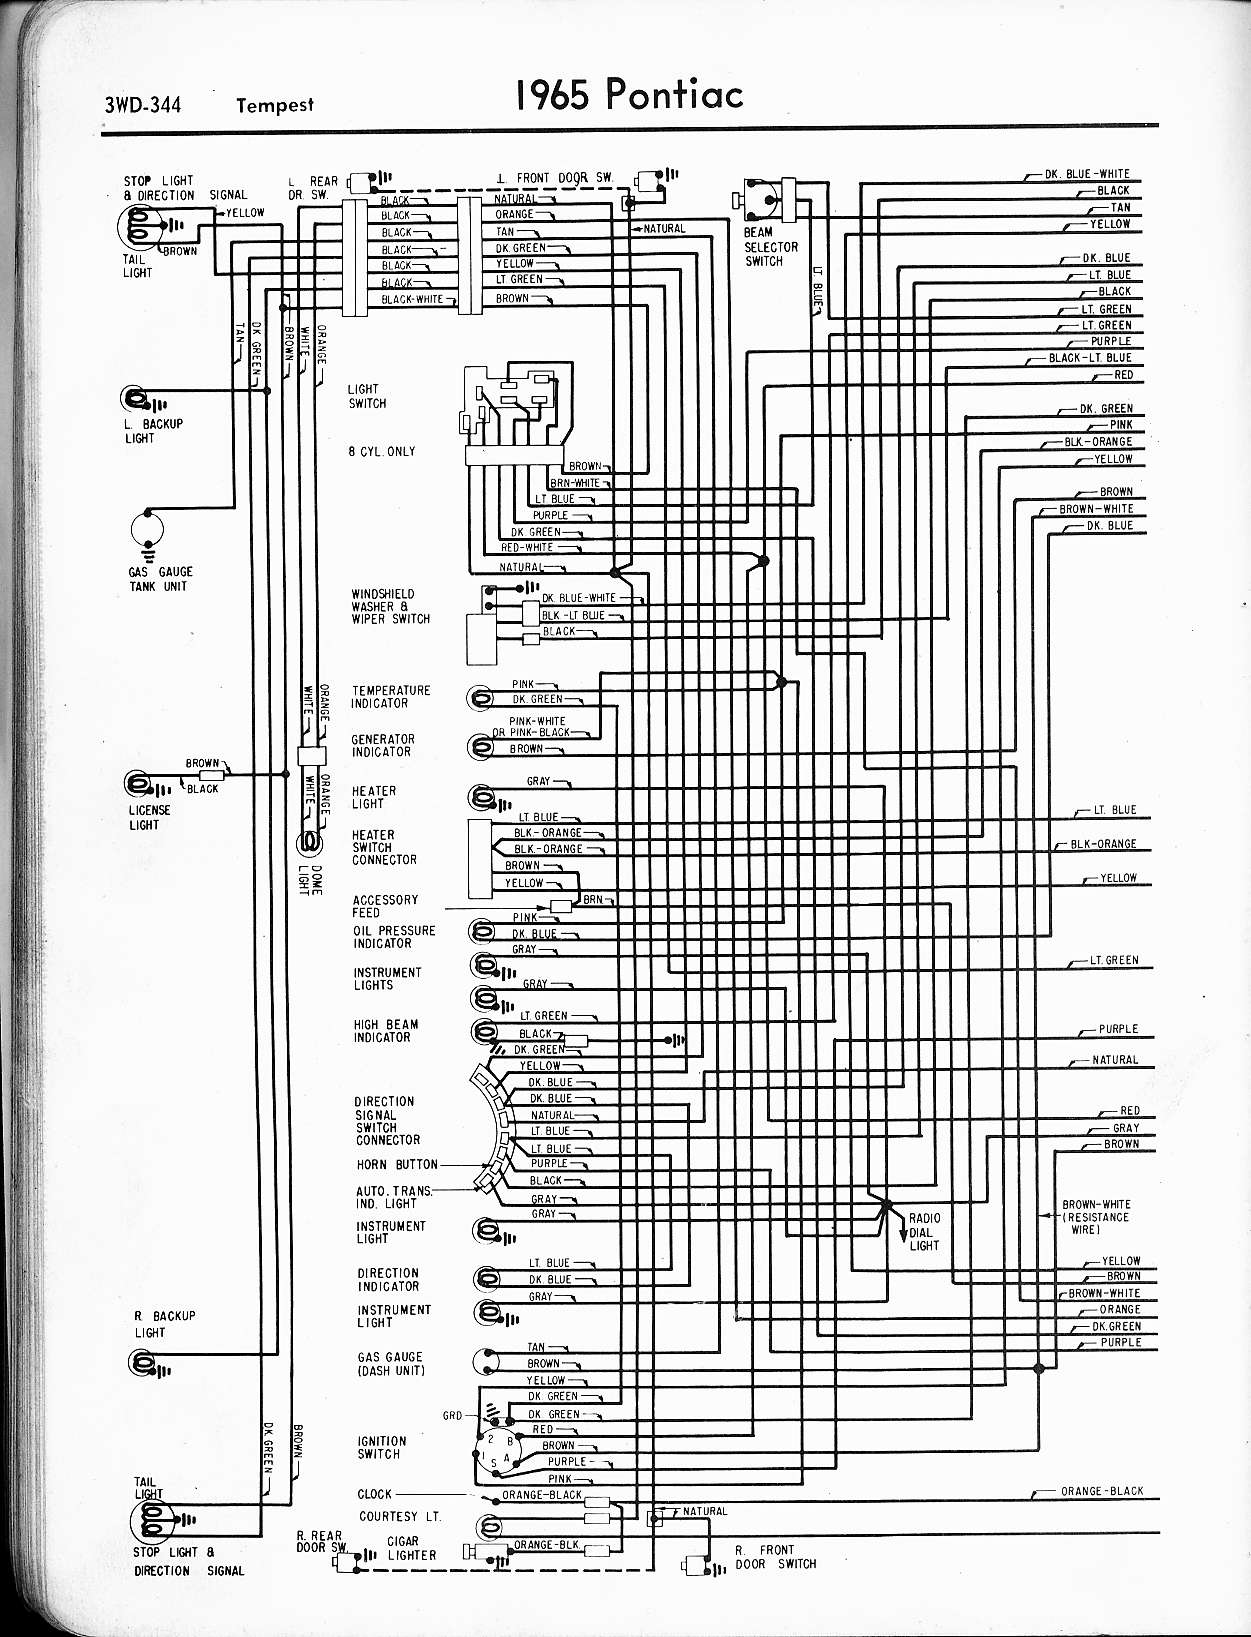 2004 Pontiac Gto Turn Signal Switch Wiring Diagram - Explore ...